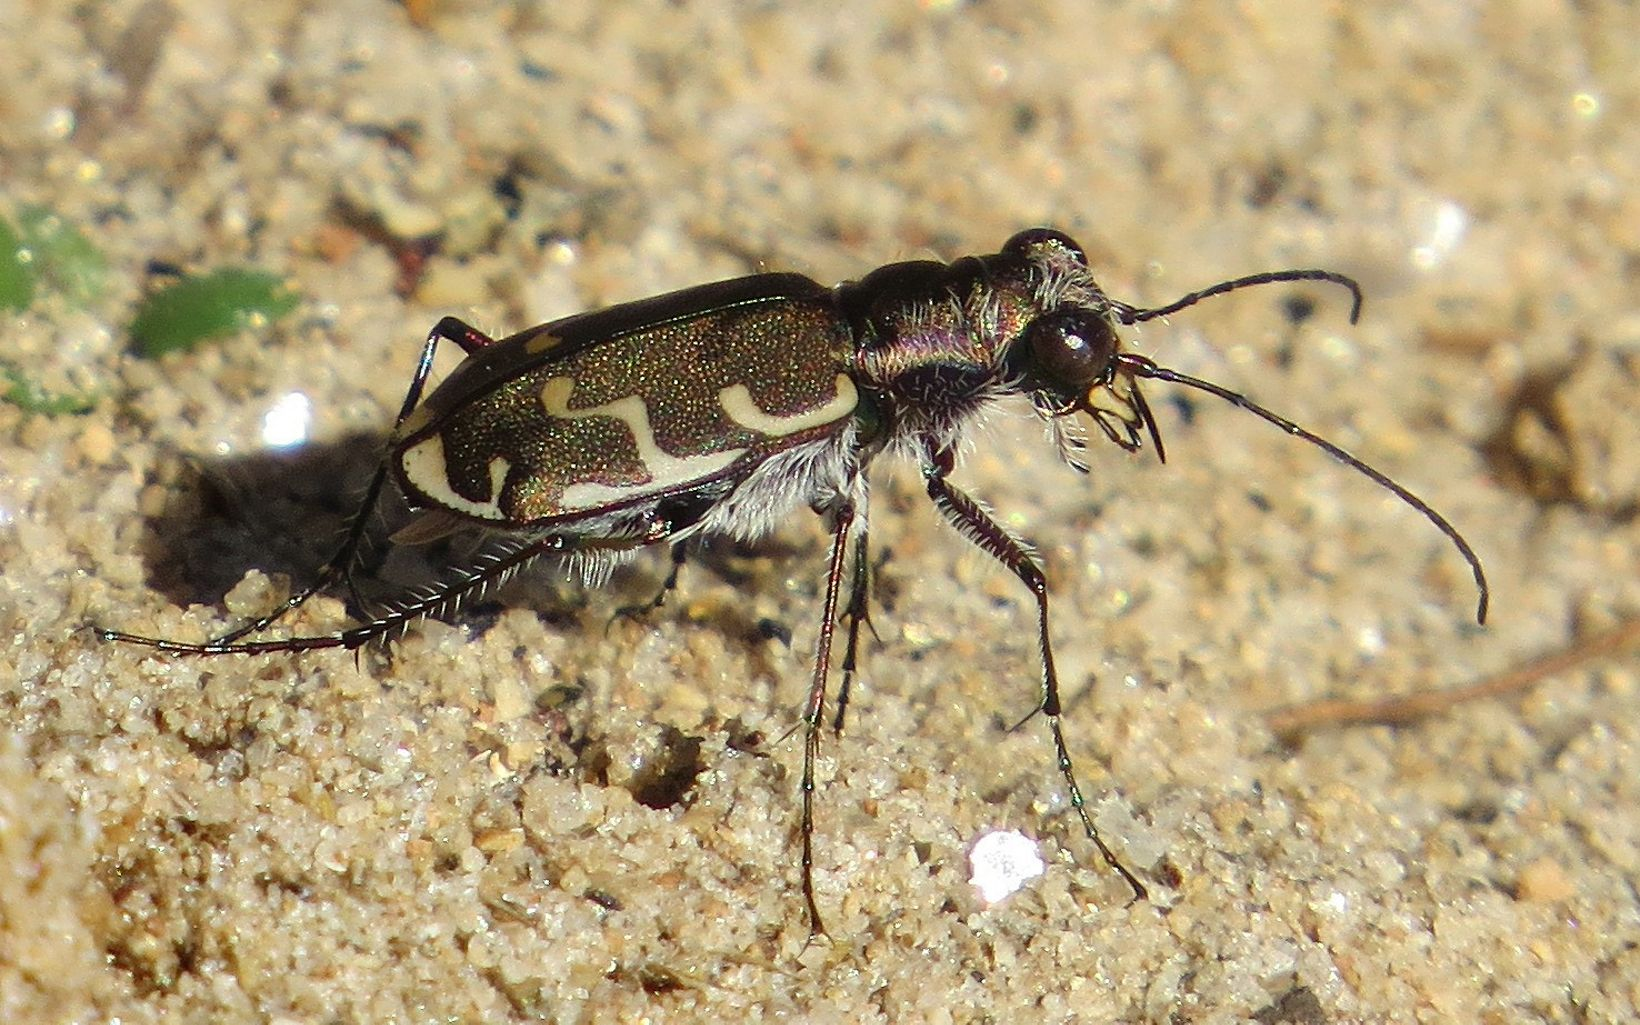 A brown, slightly iridescent beetle.